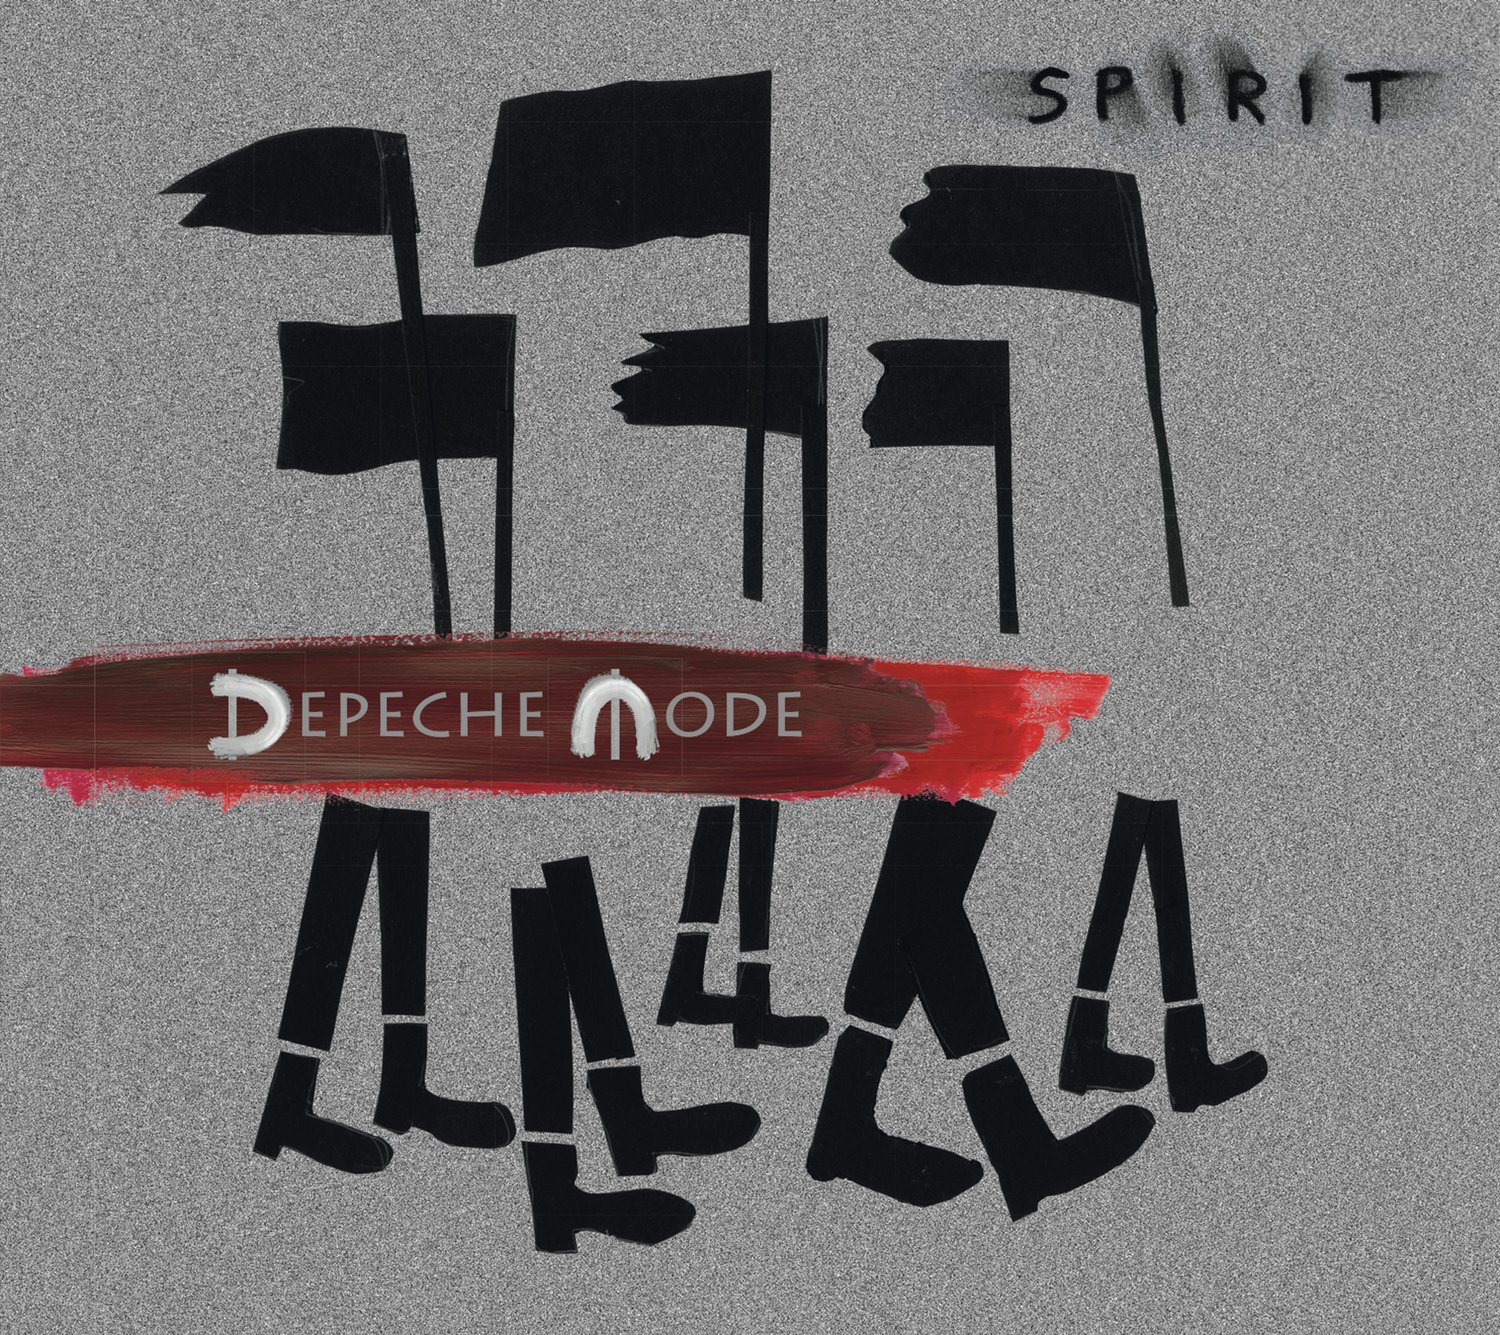 CD : Depeche Mode - Spirit (CD)